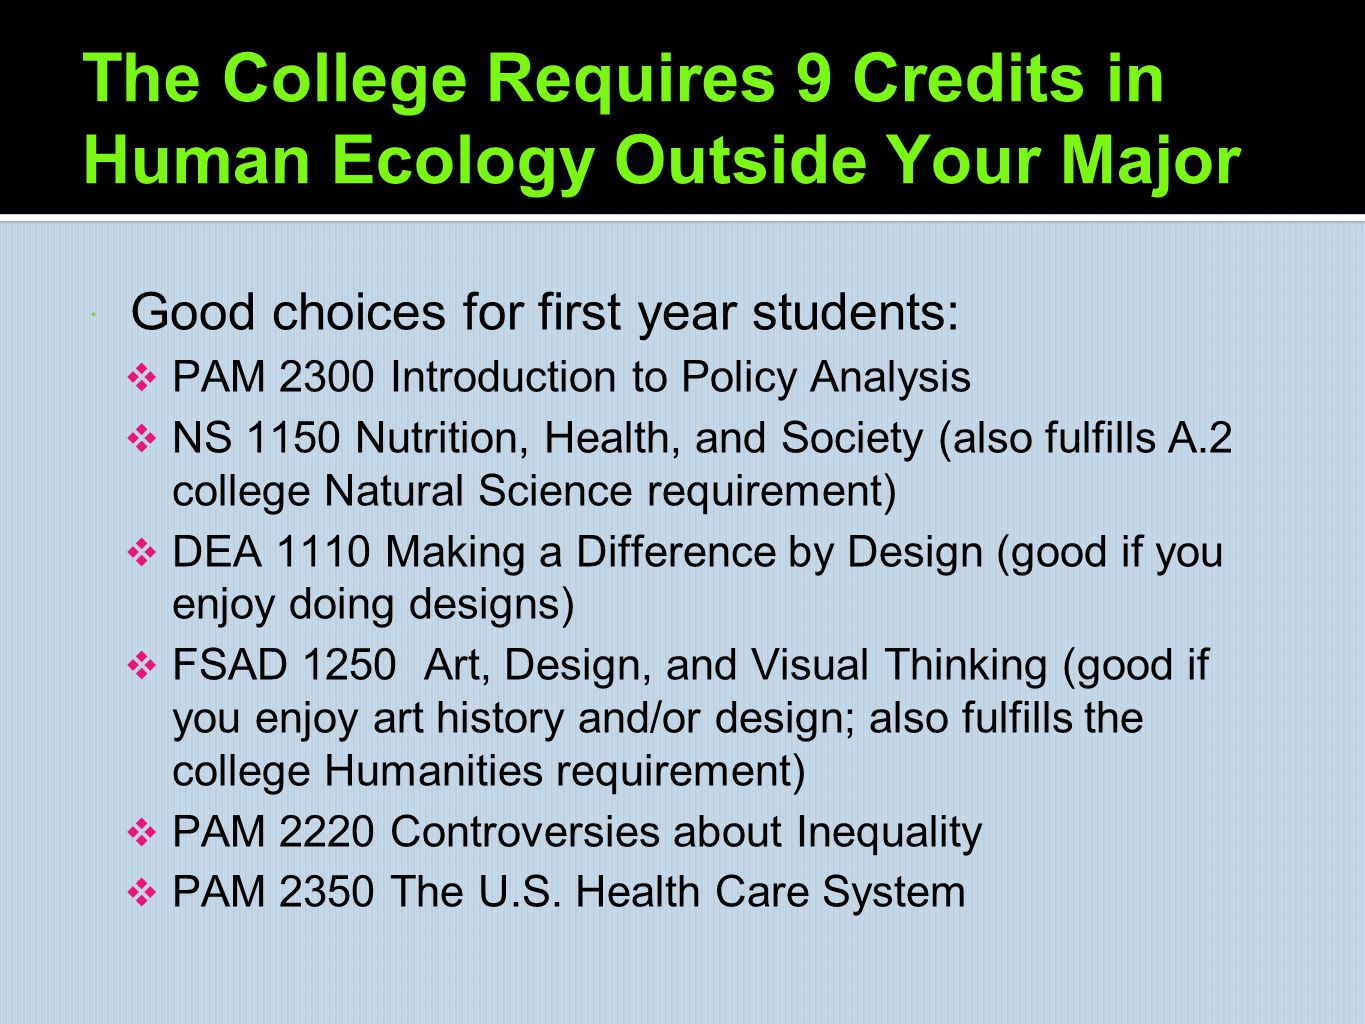 The College Requires 9 Credits in Human Ecology Outside Your Major